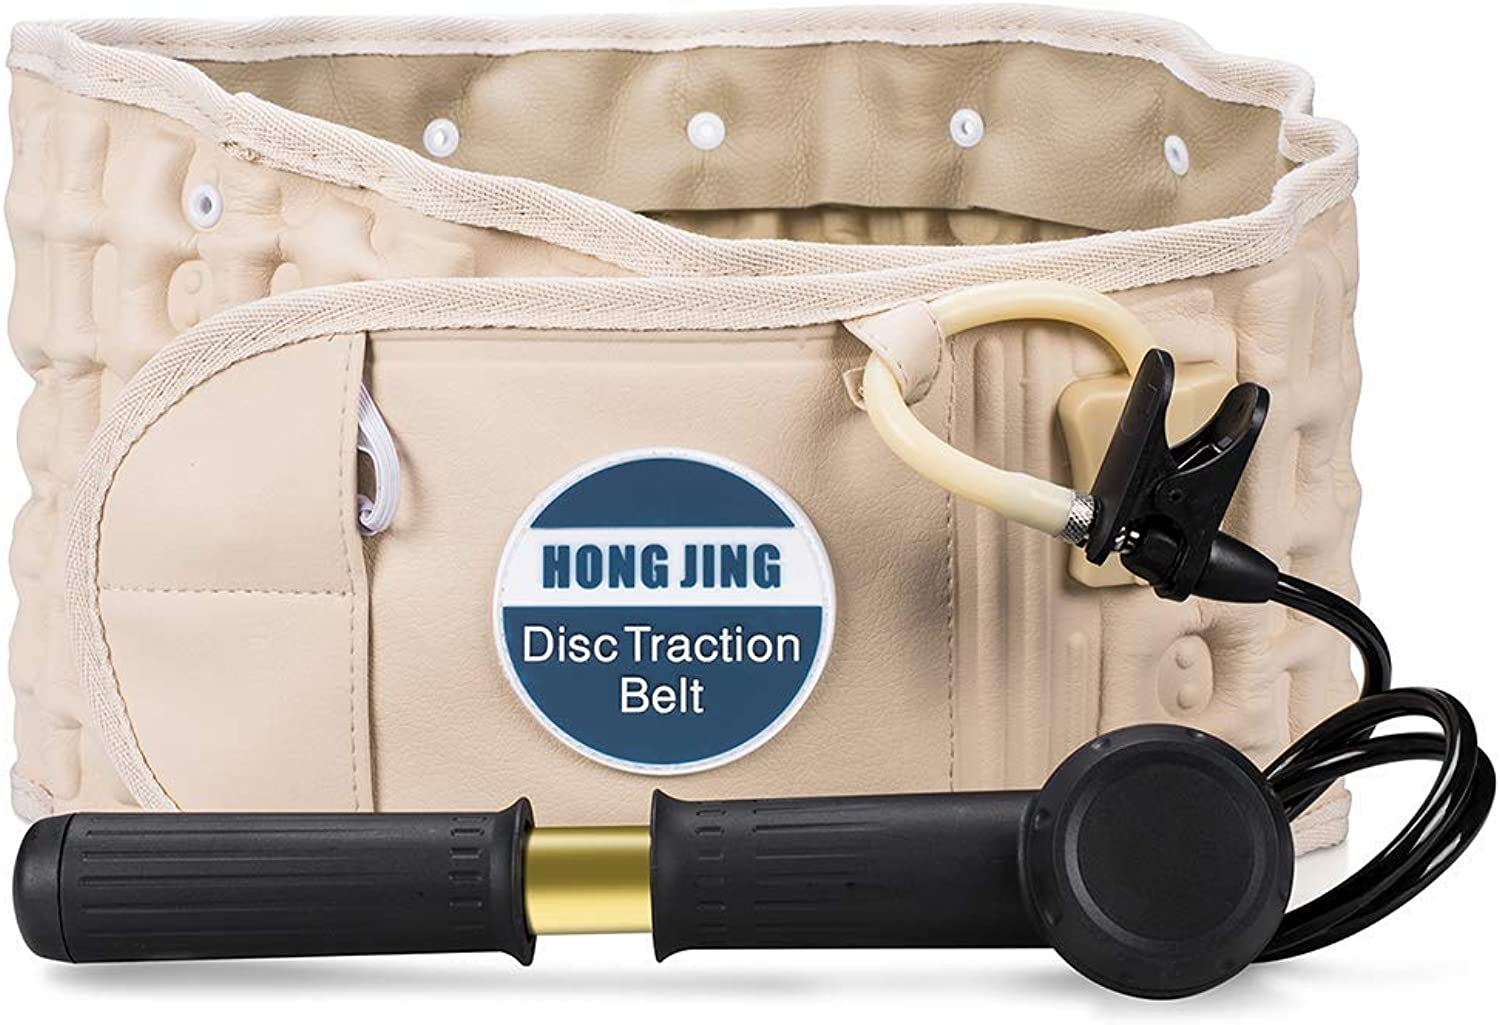 HONGJING Spinal Decompression Back Belt & Lumbar Support for Back Pain  Lower Back Traction Device(2949 Waist)